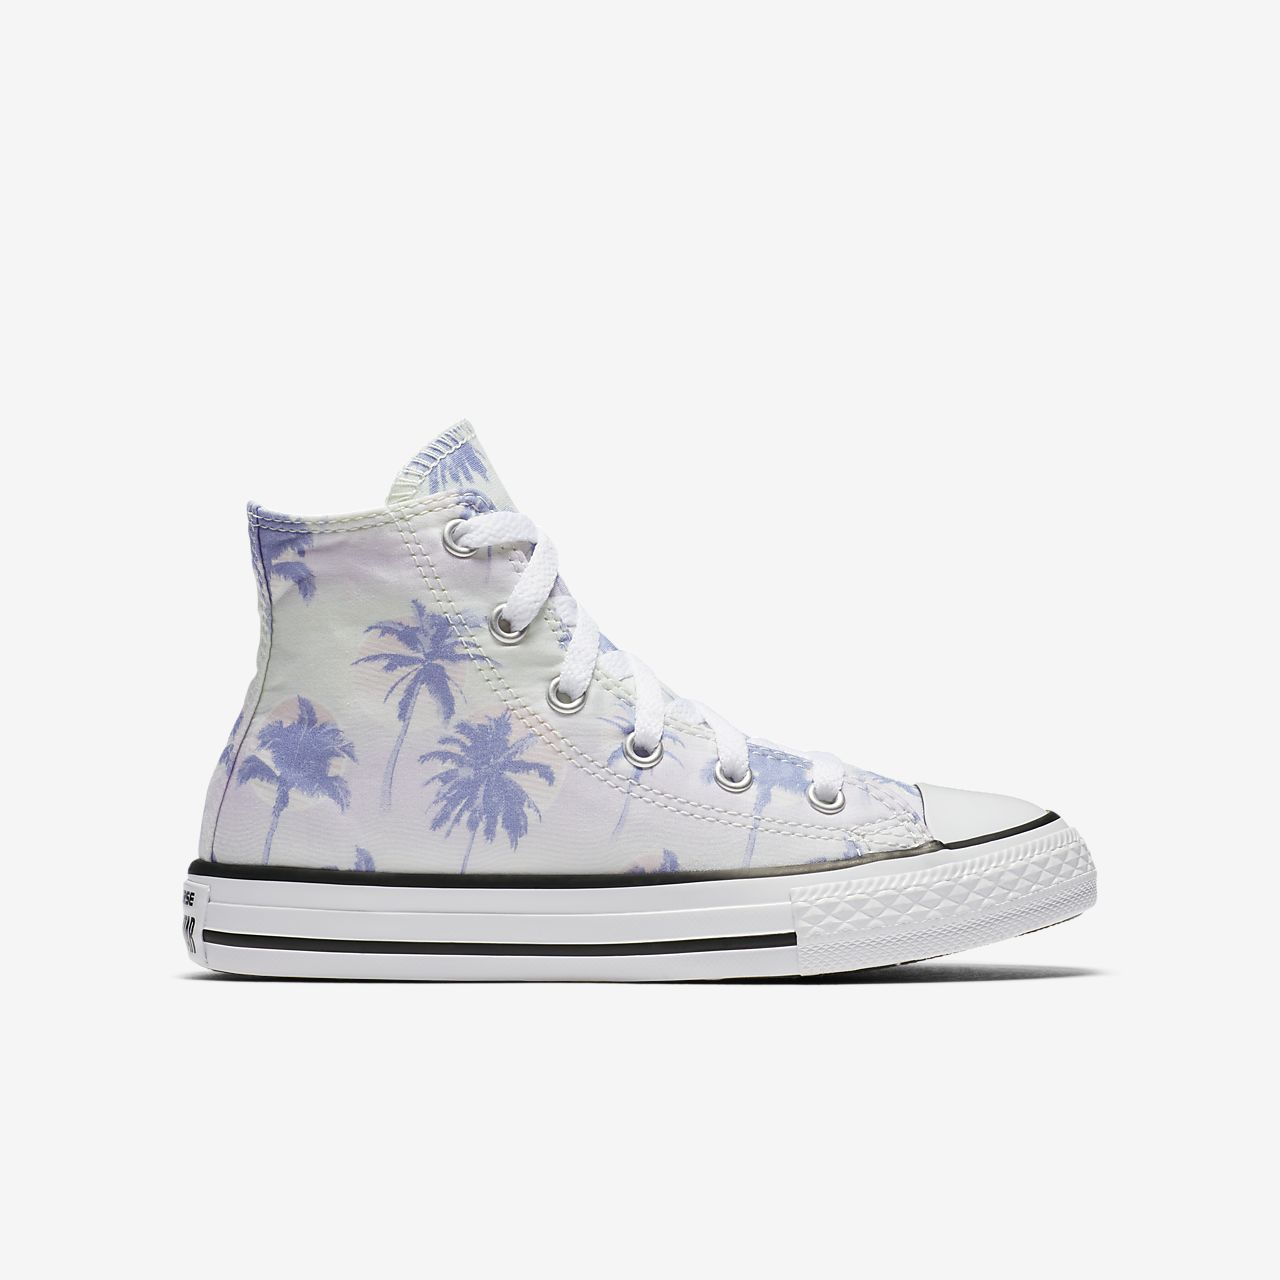 Converse chuck taylor all star palm trees high top littlebig kids converse chuck taylor all star palm trees high top littlebig kids shoe nvjuhfo Gallery